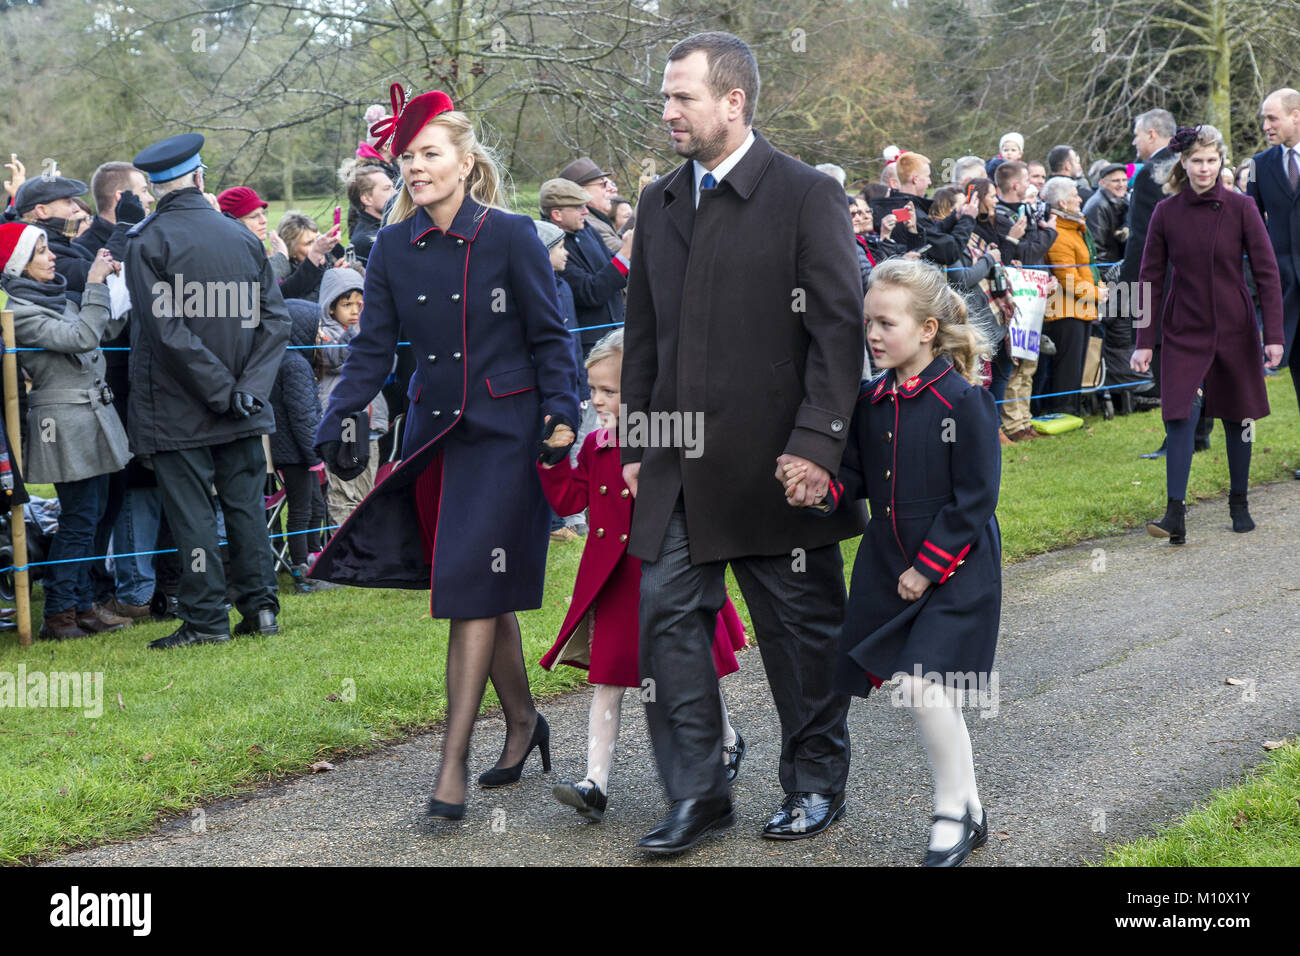 The British Royal family arrive at Sandringham to celebrate Christmas Day  Featuring: Autumn Phillips, Peter Phillips - Stock Image